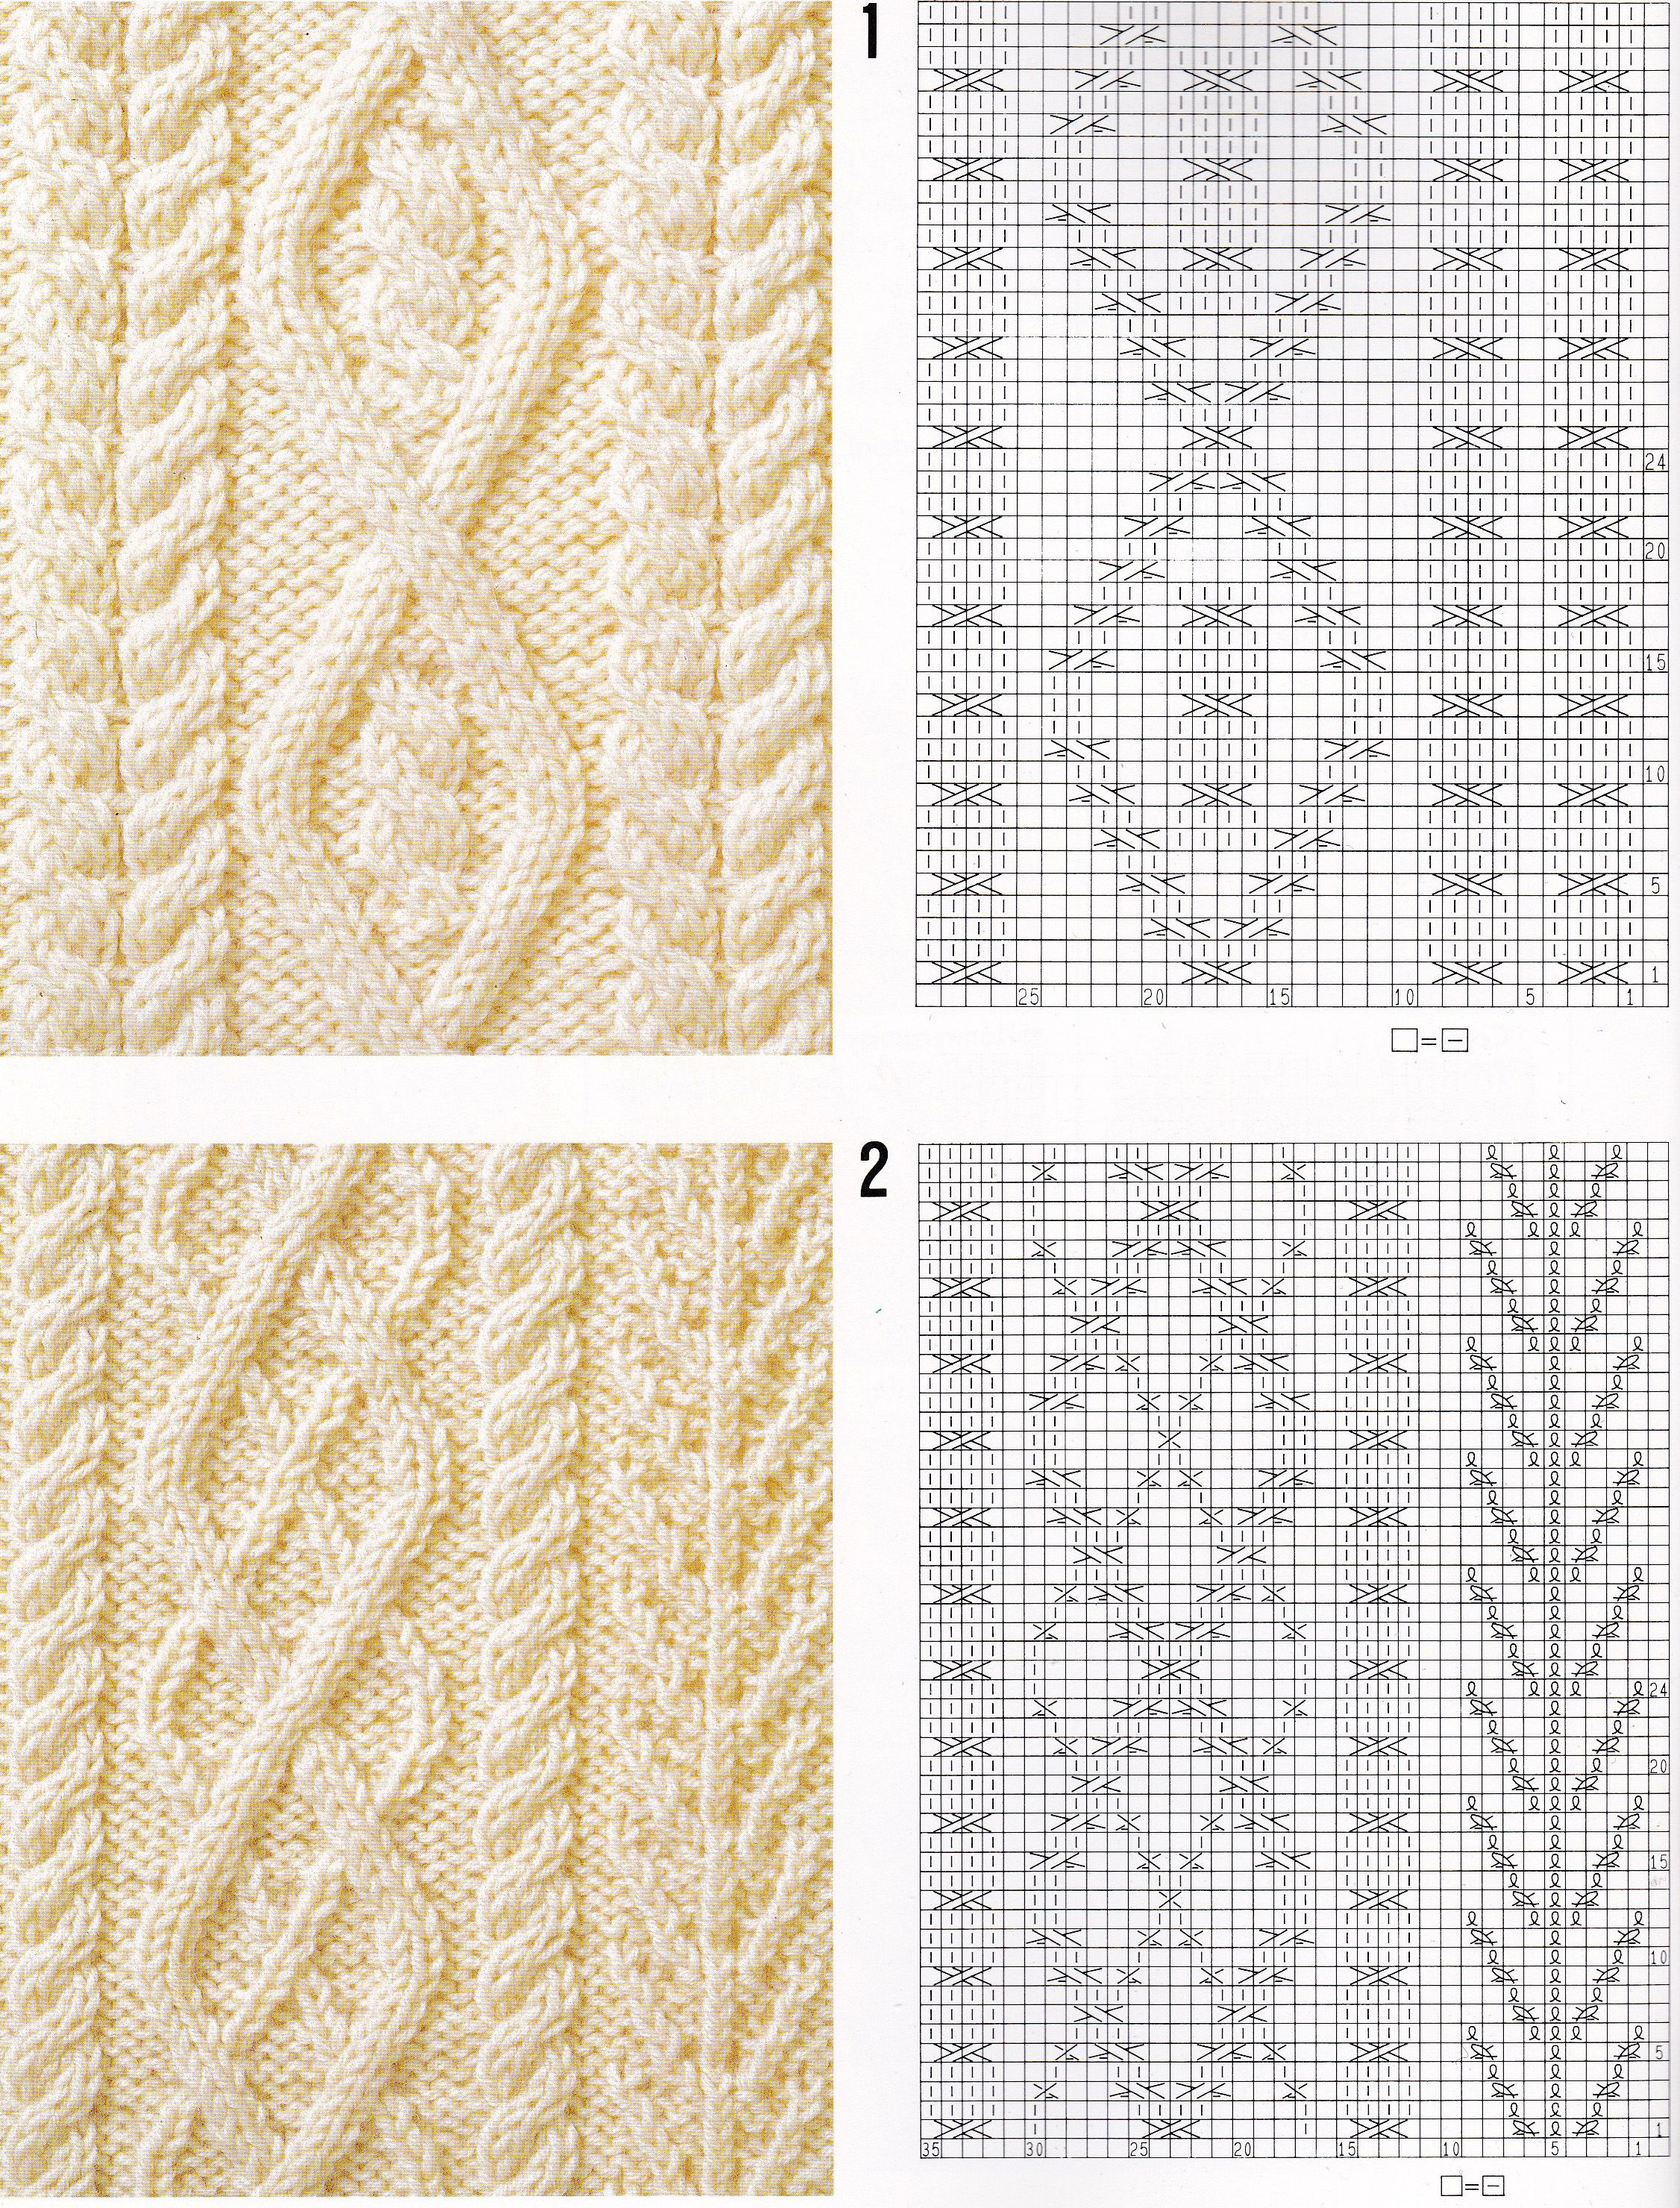 10 cable patterns and charts | 2018 crochet and knit | Pinterest ...